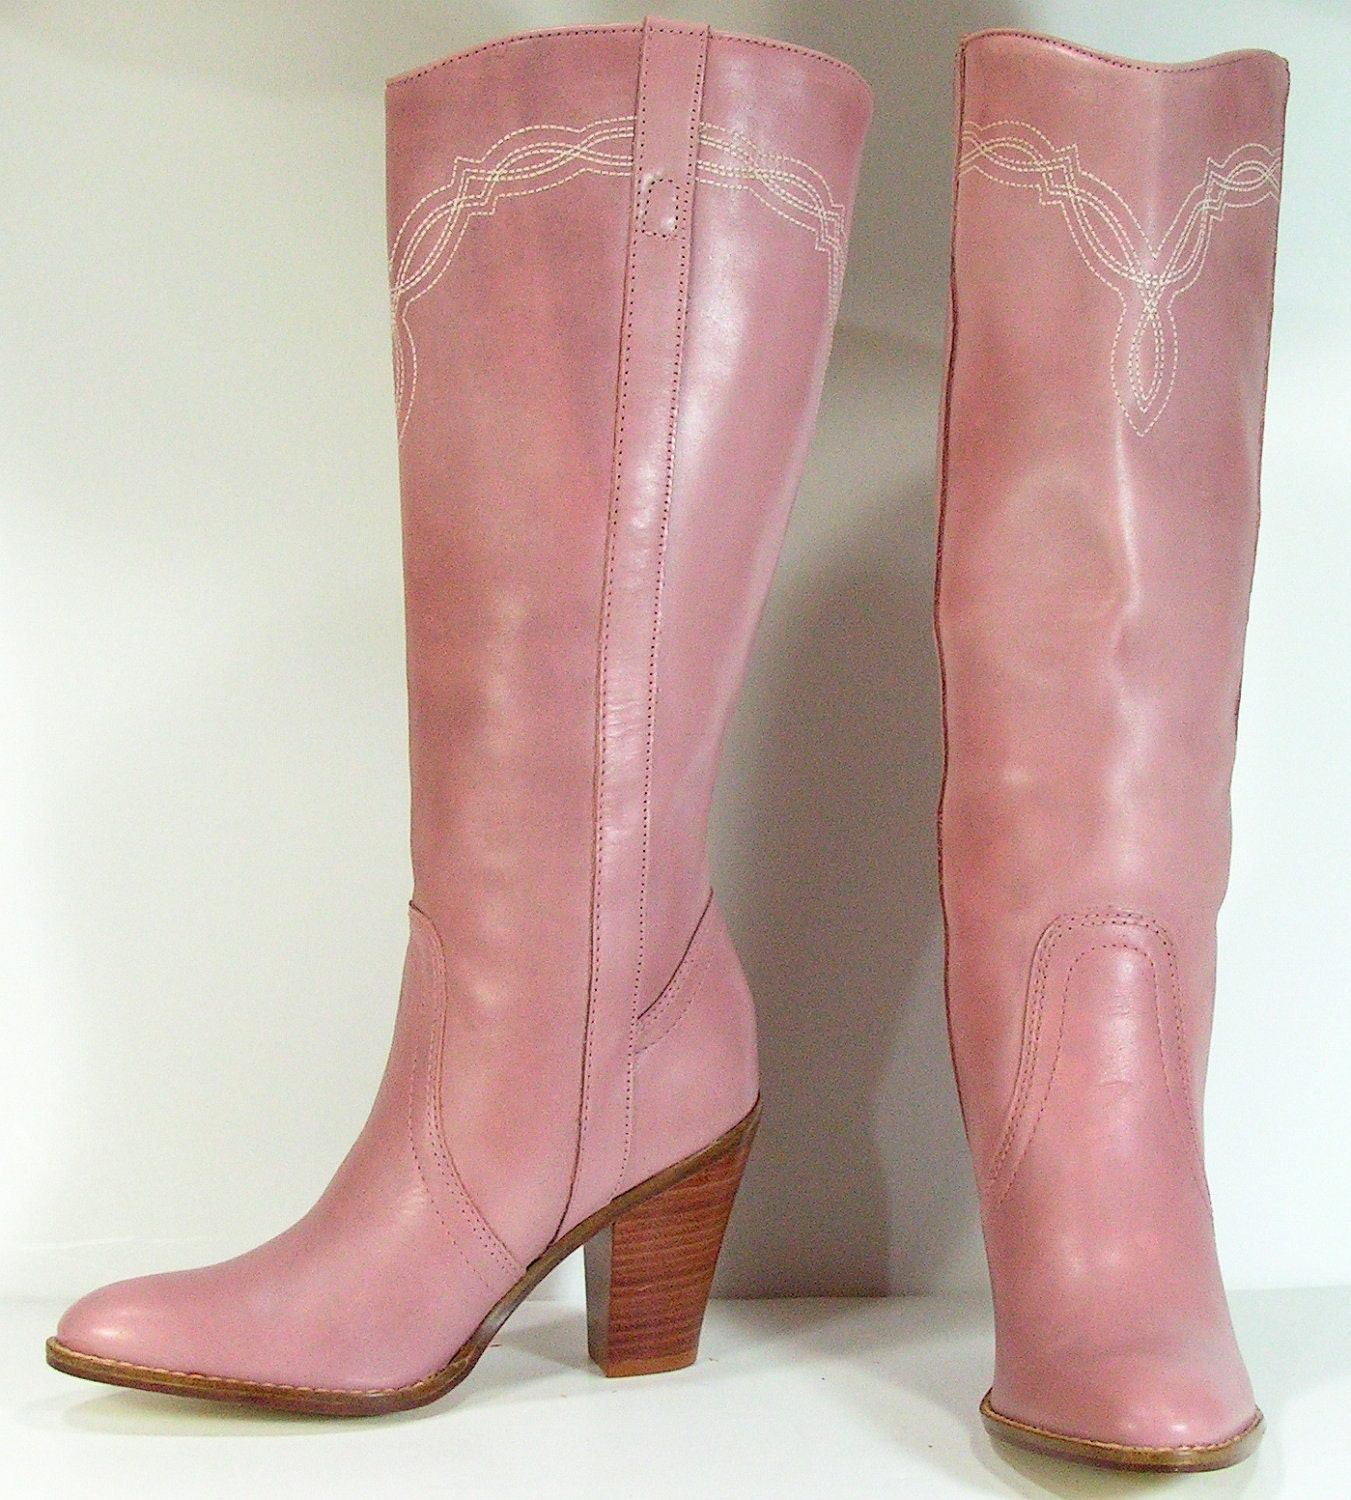 knee high boots womens 6 5 b pink leather heeled